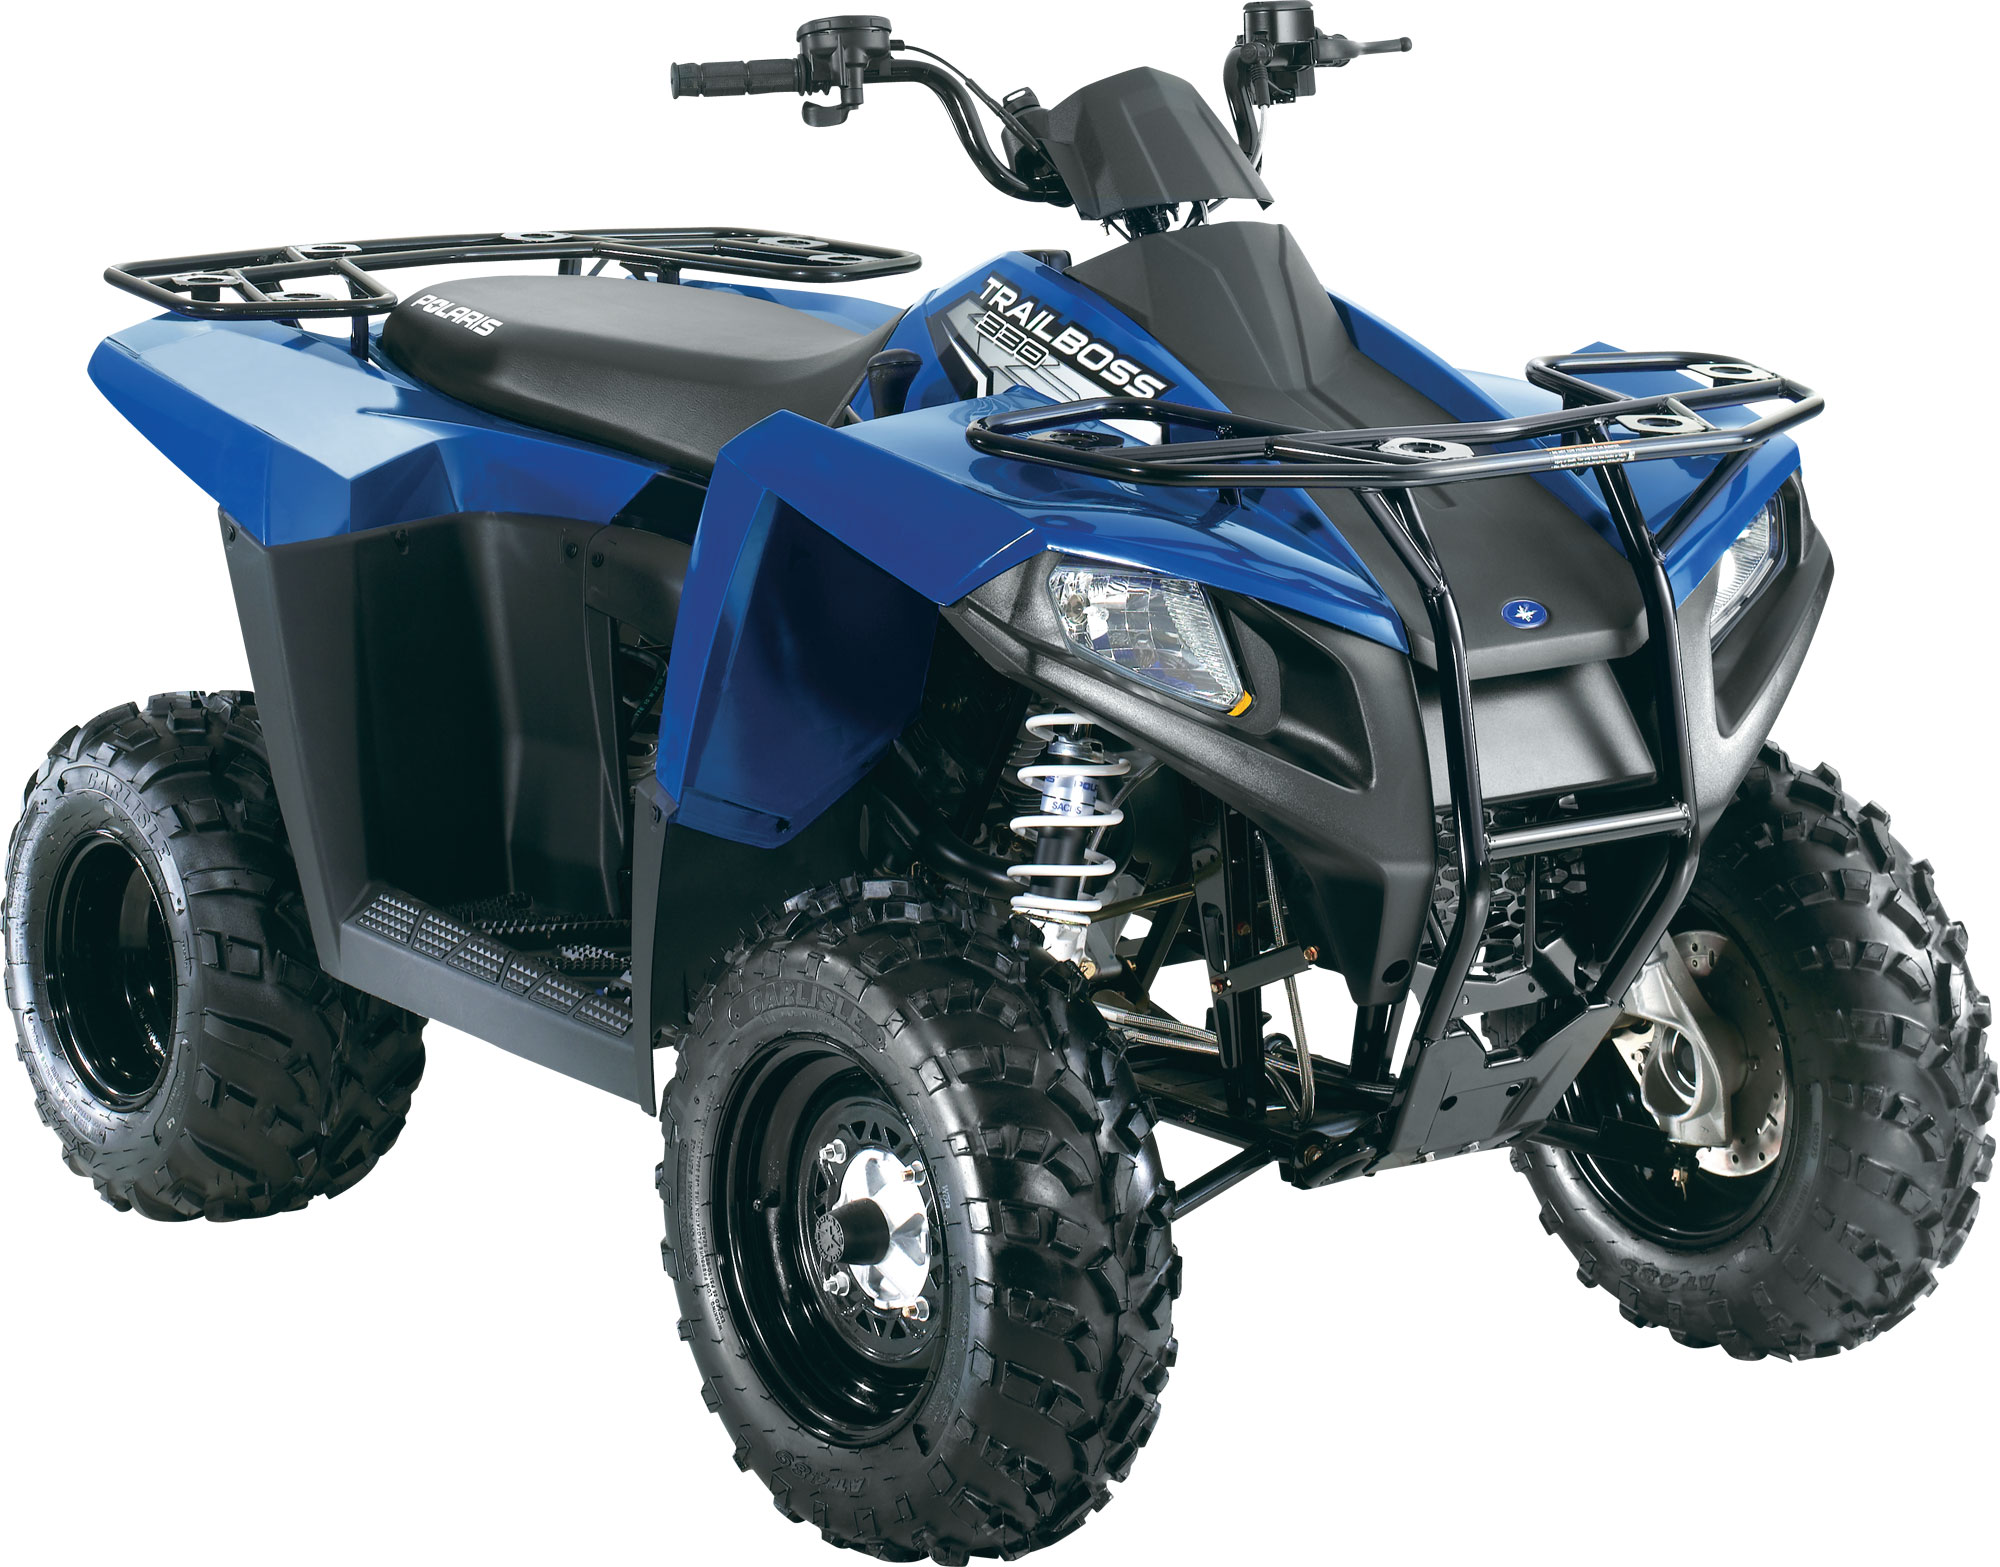 Polaris Trail Boss 330 2008 images #169654